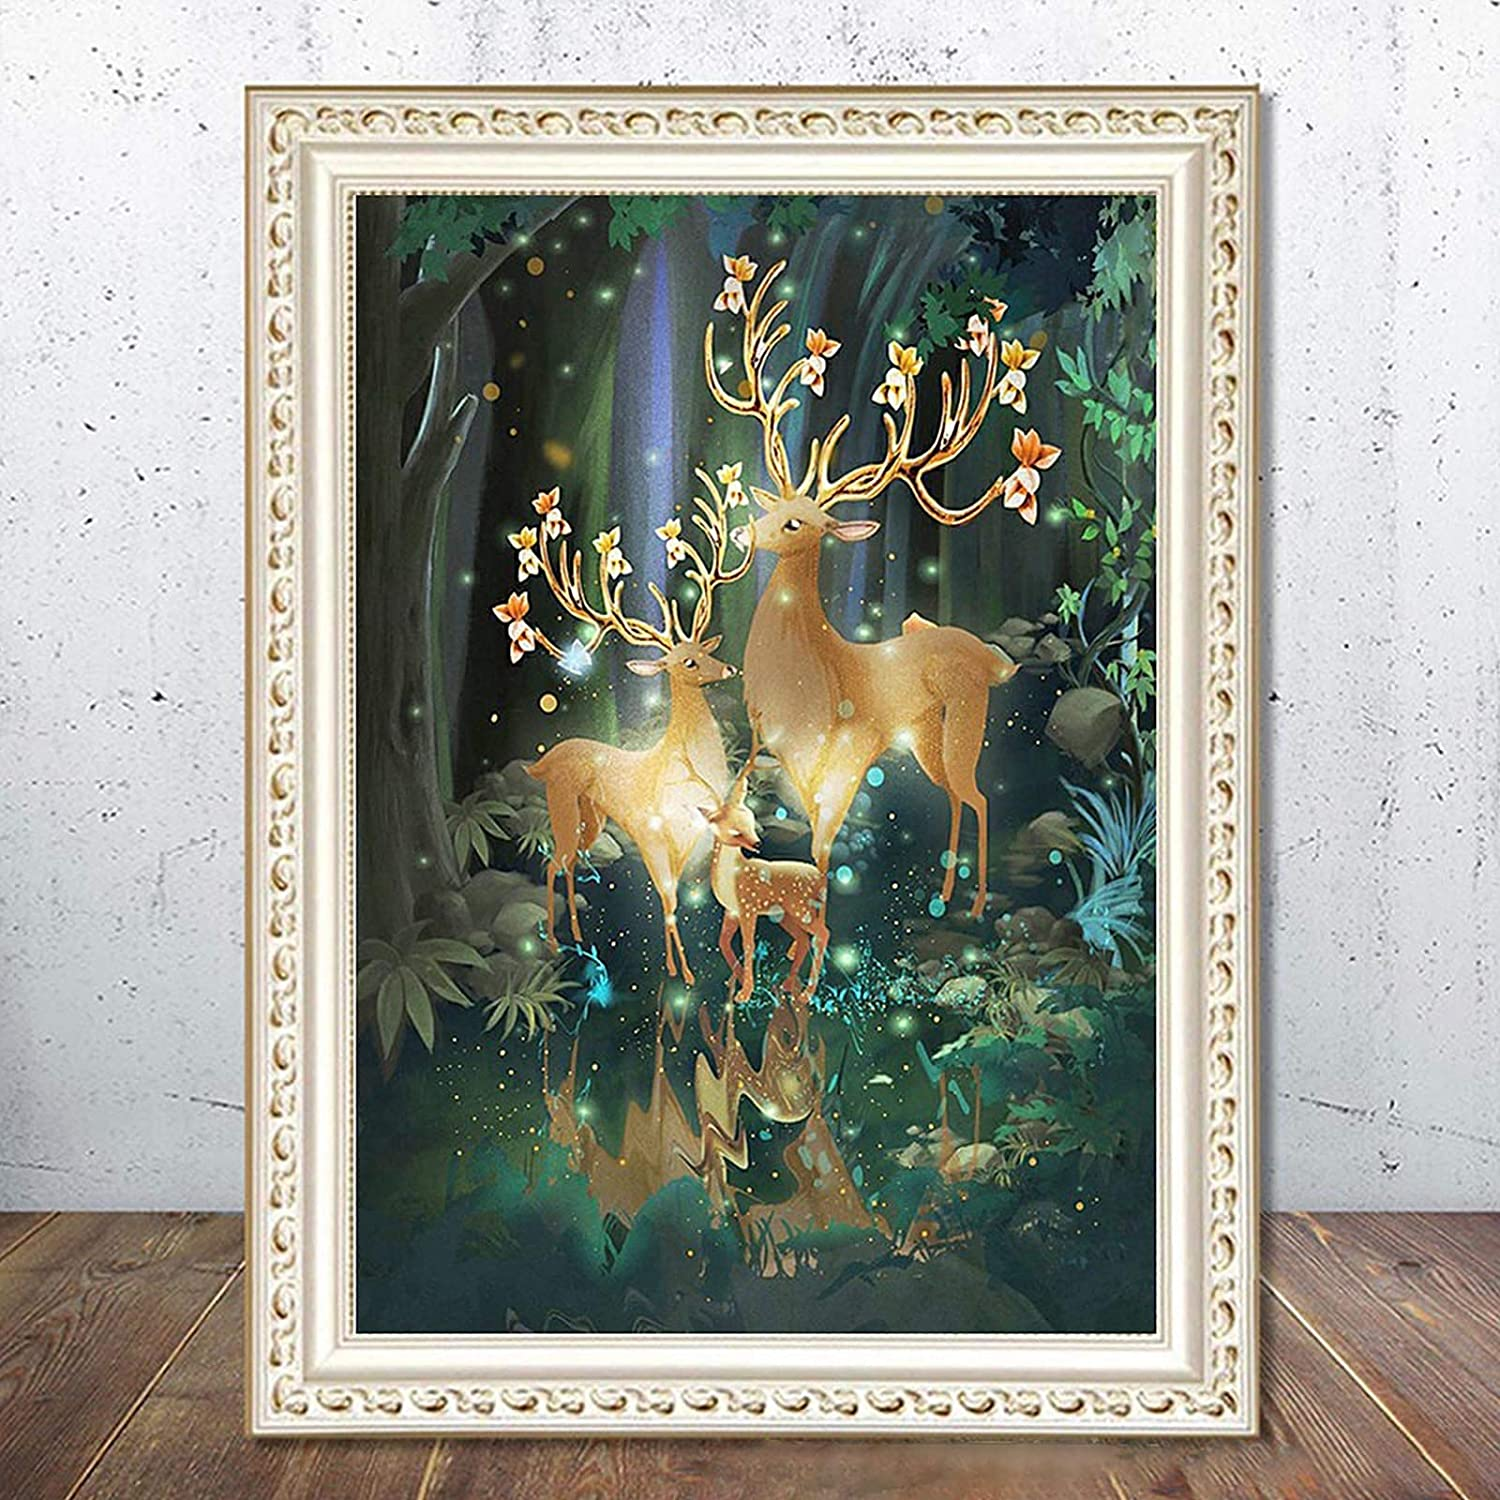 Christmas -5D Diamond Painting Kits for Adults Full Drill DIY Christmas Diamond Painting Art by Number Kits Rhinestone Embroidery Cross Stitch Crafts for Home Wall Decor Gift (Multicolor)